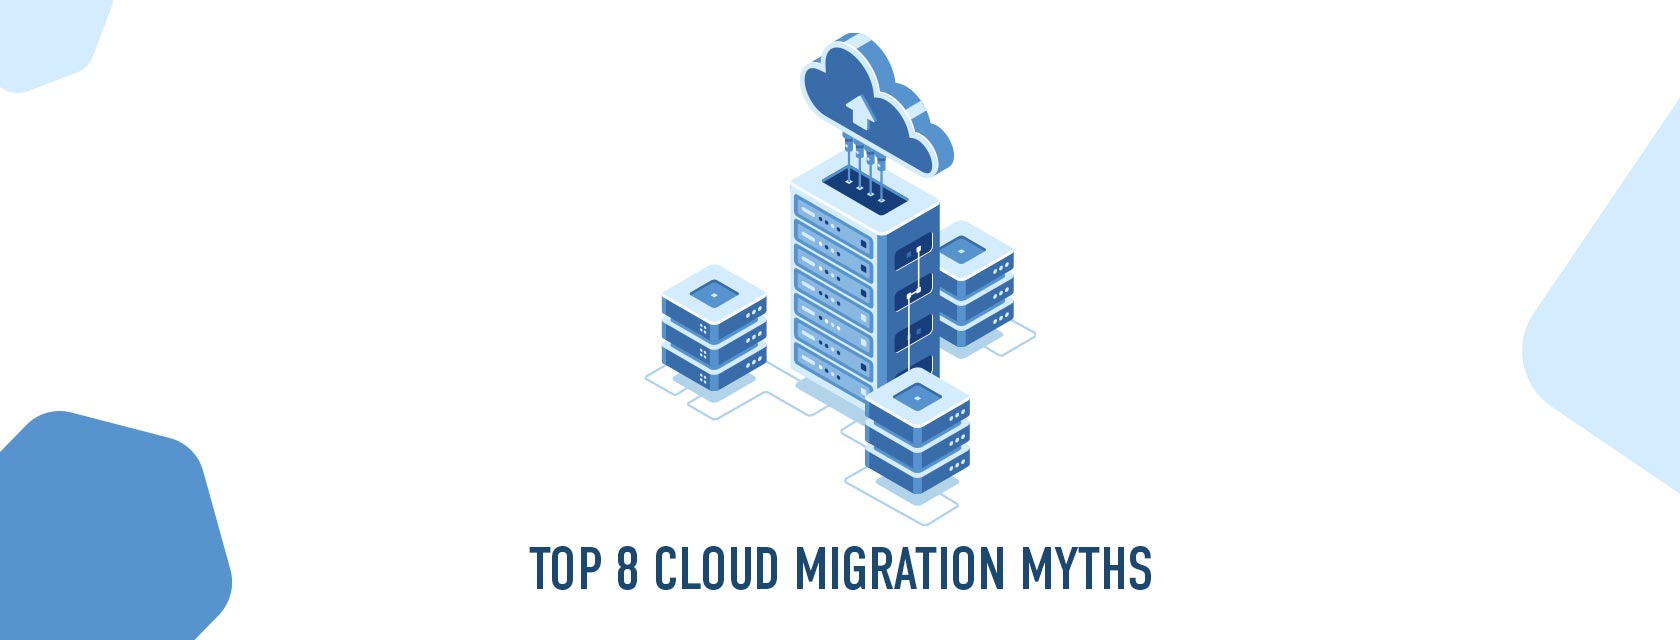 Top 8 Cloud Migration Myths You Must Know in 2021